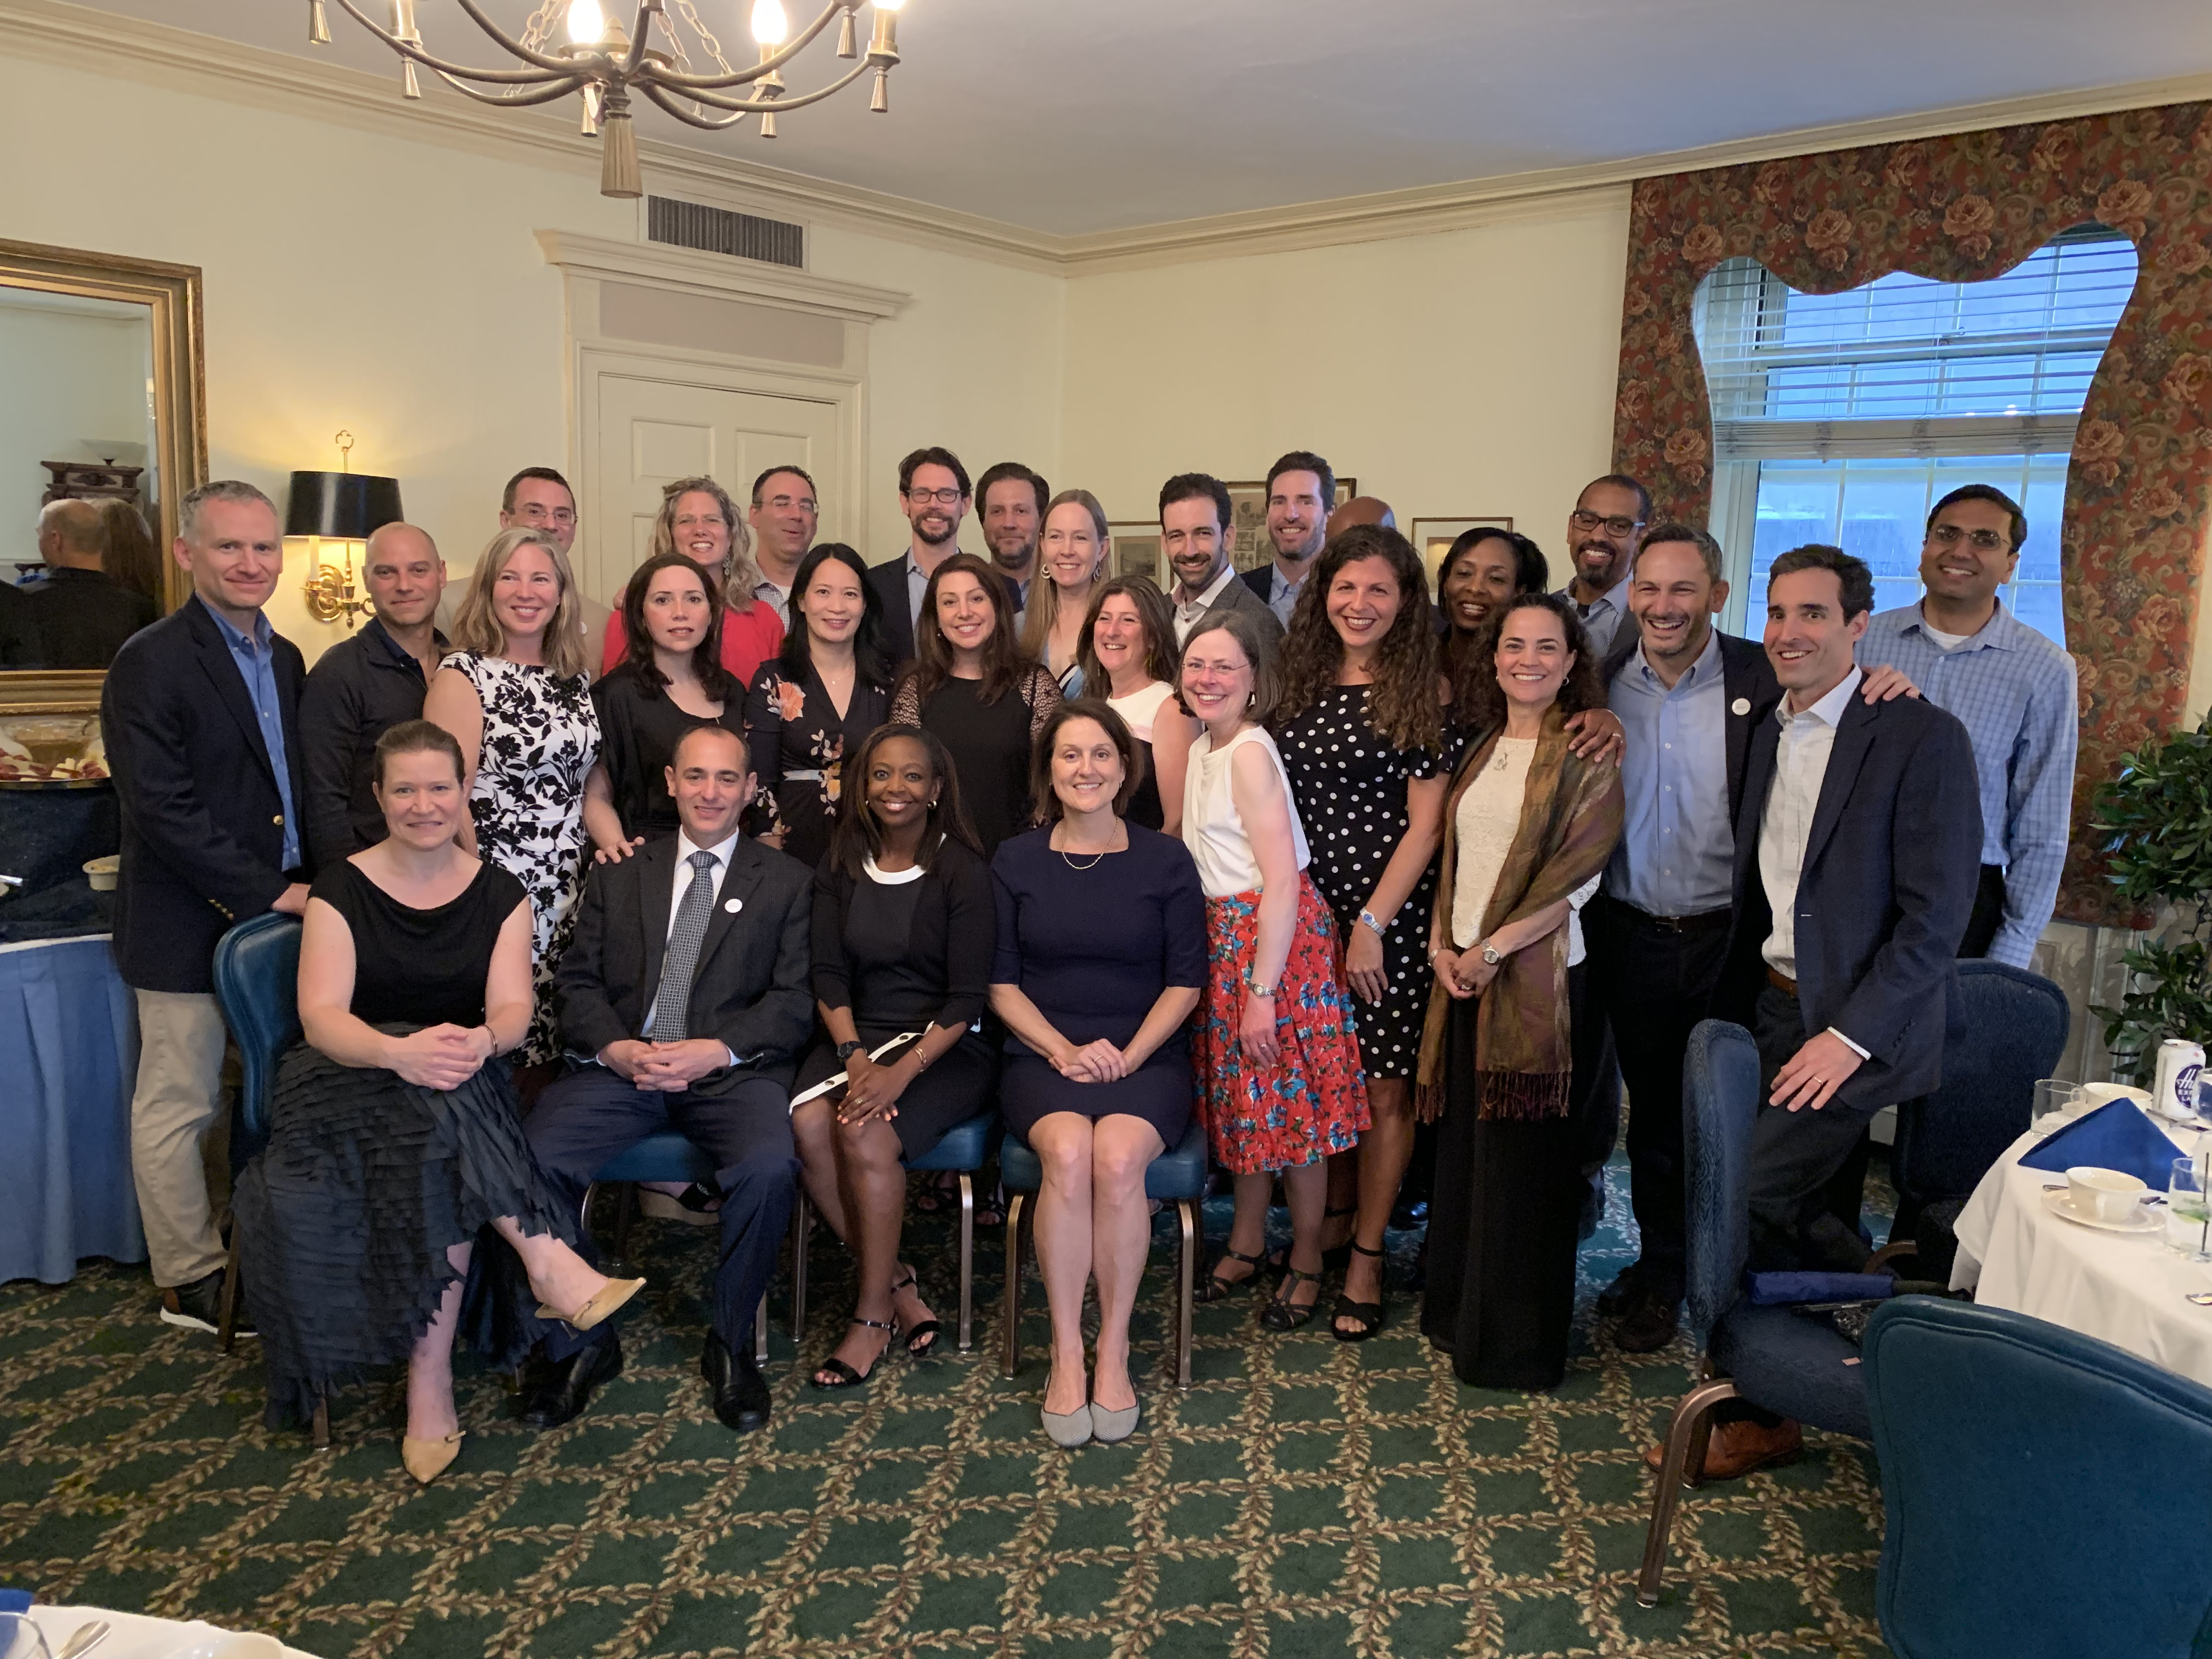 Class of 1999 20th Reunion Dinner at the Quinnipiack Club, June 1, 2019